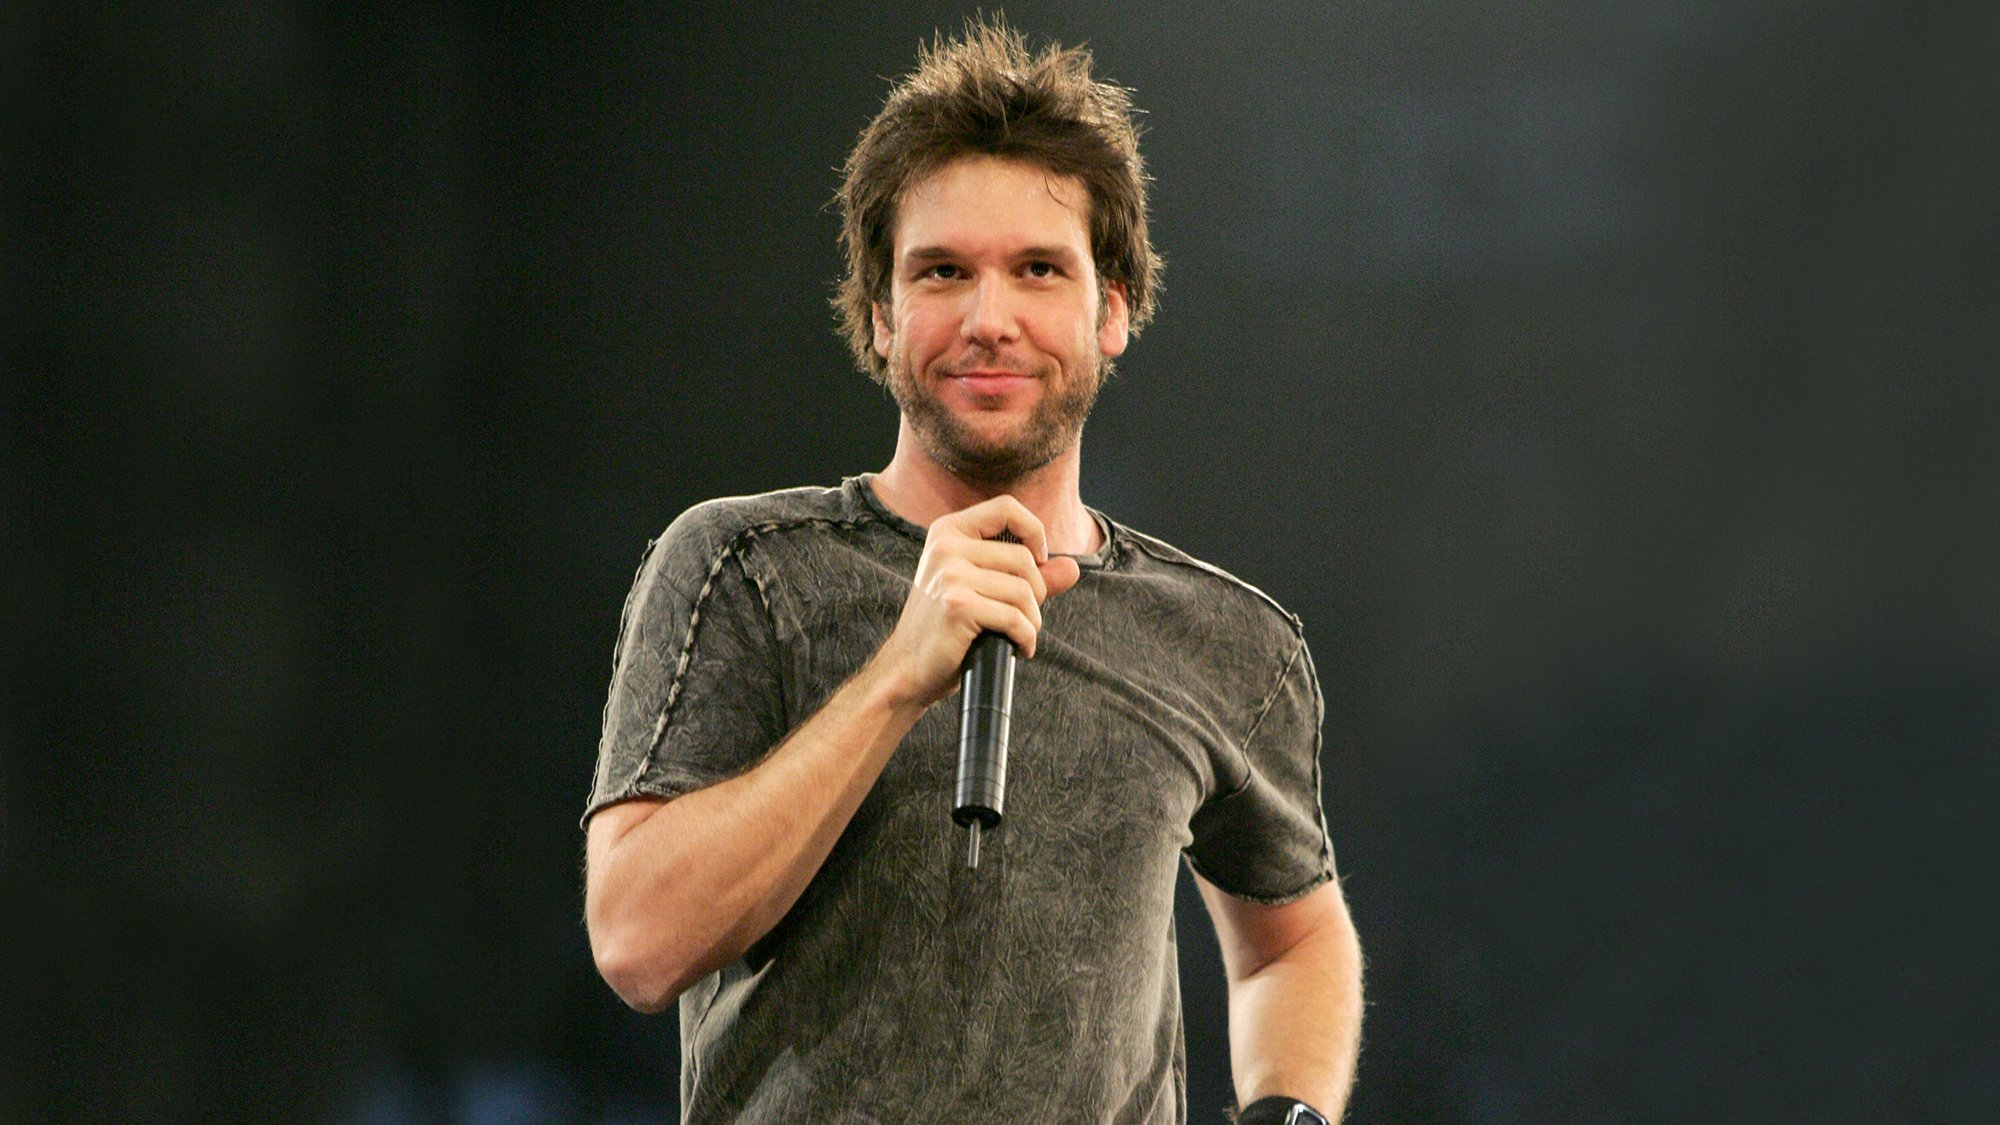 Dane Cook: Vicious Circle